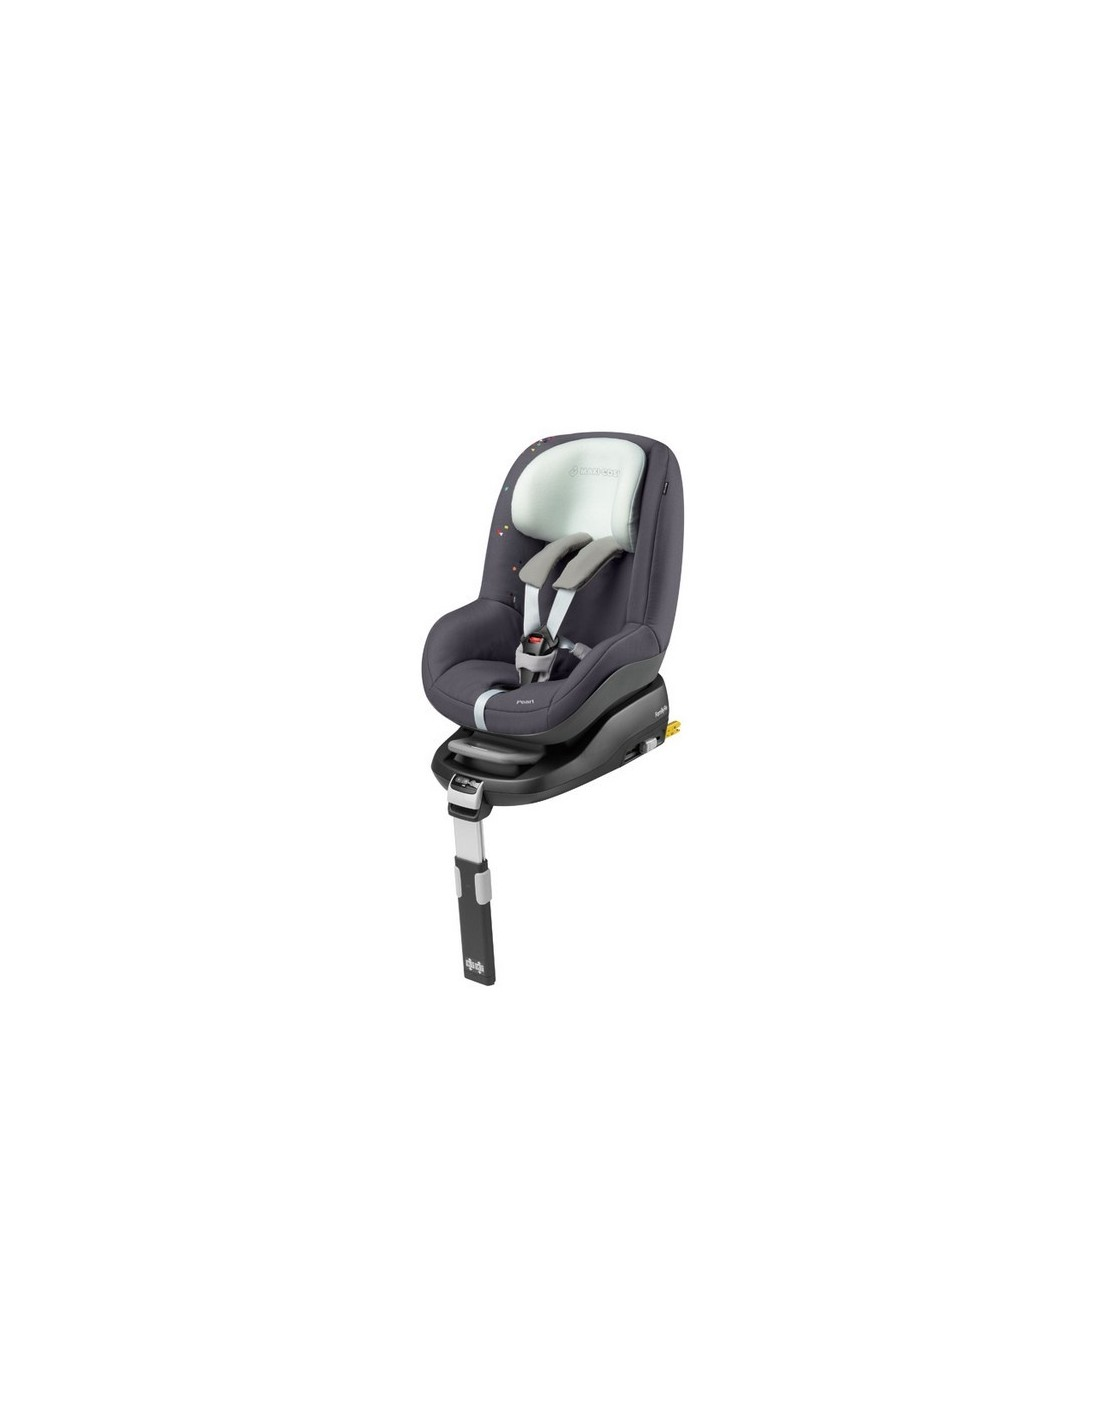 maxi cosi family fix baza isofix dla fotelika samochdowego. Black Bedroom Furniture Sets. Home Design Ideas